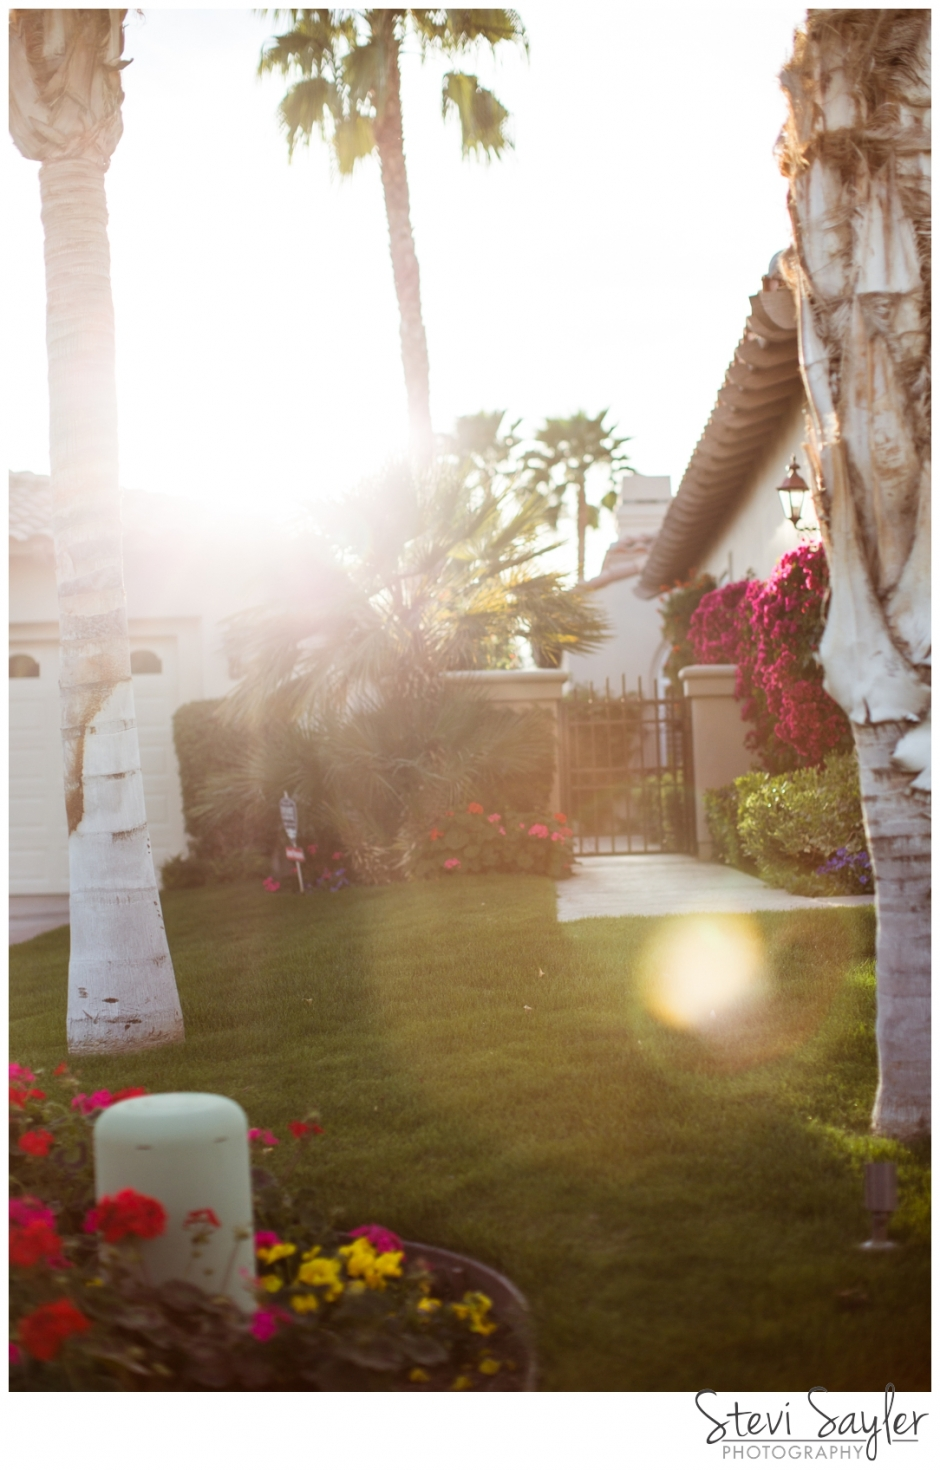 Stevi Sayler Photography La Quinta California Destination Photographer Still Life Landscape